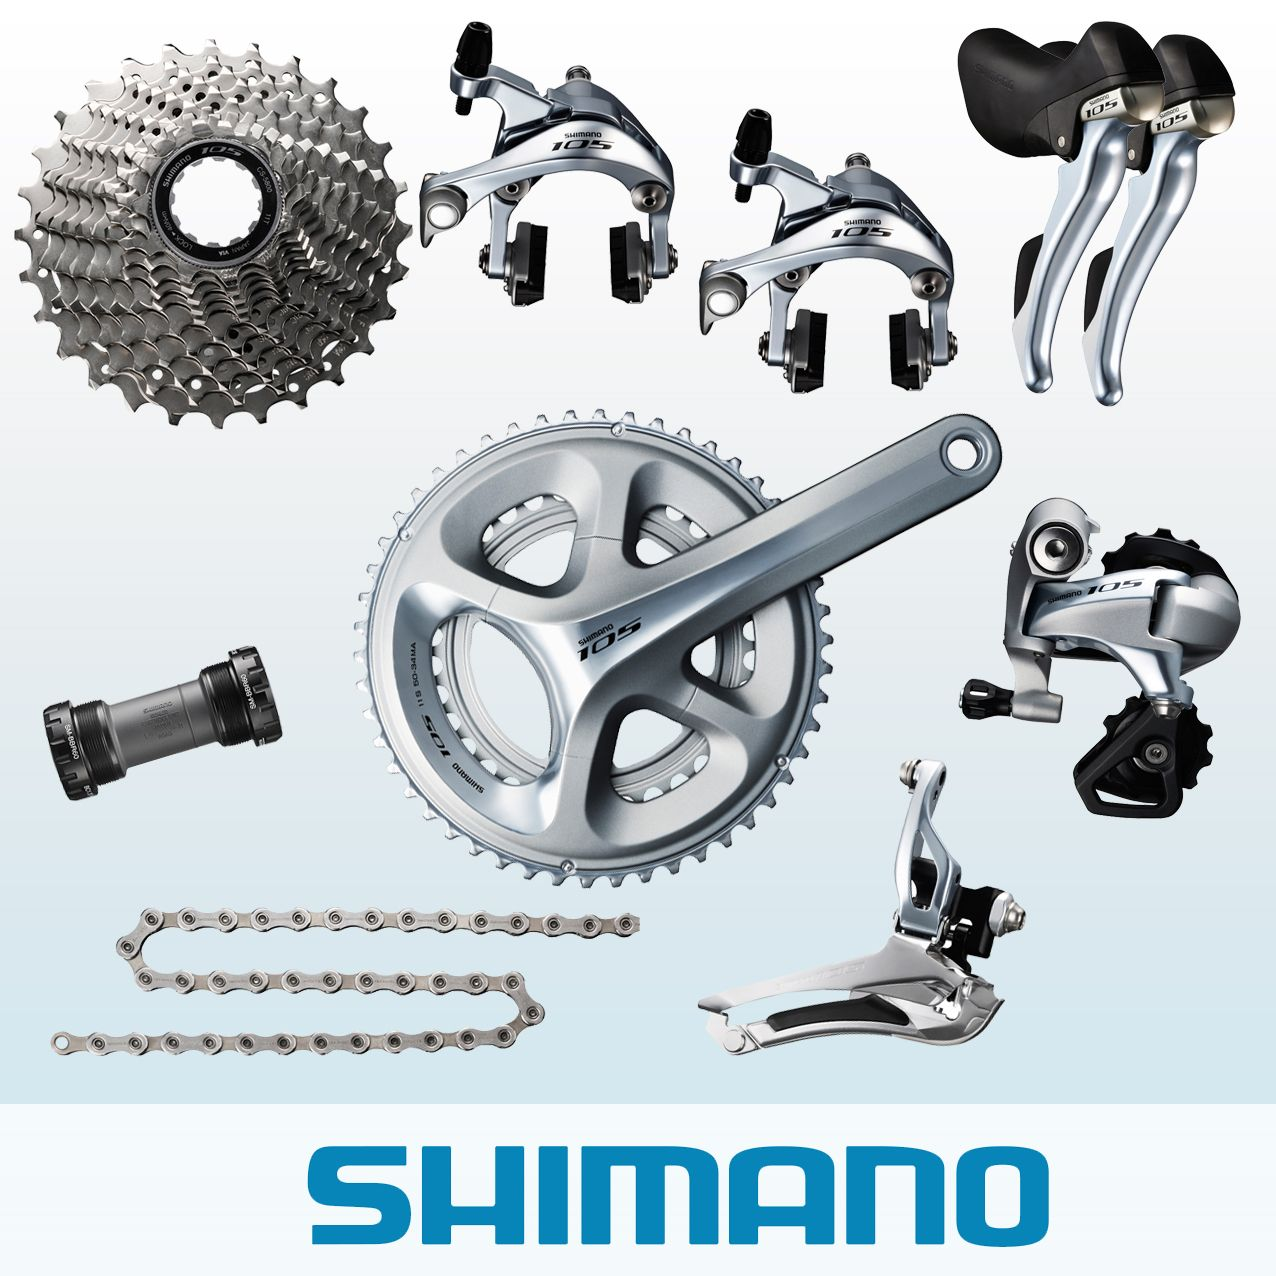 b616d7aa5a3 Shimano 105 5800 11 Speed Groupset Silver | Merlin Cycles